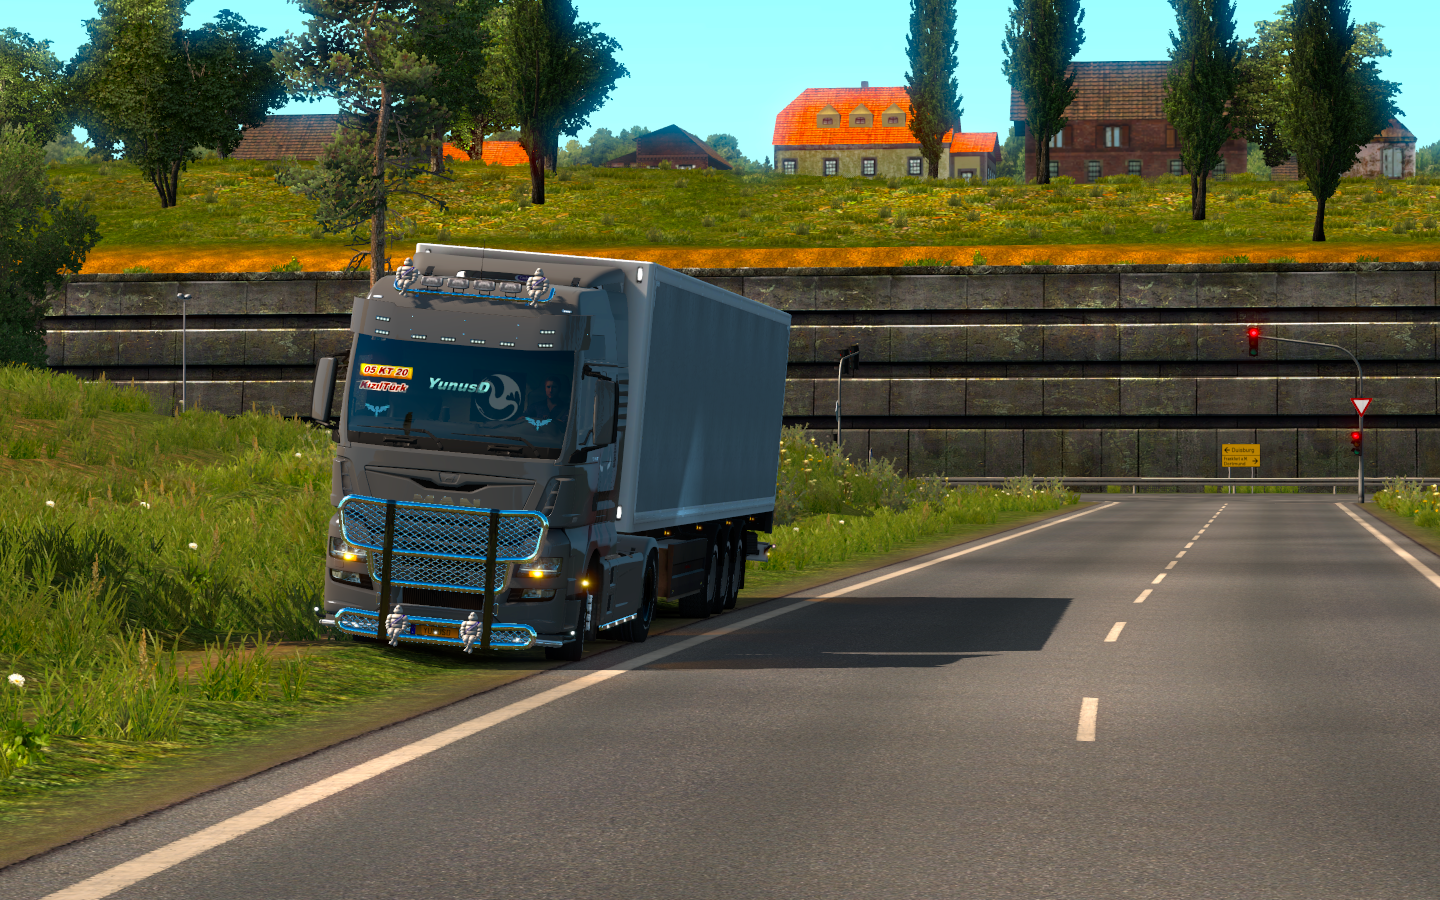 ets2_20190209_044713_00.png